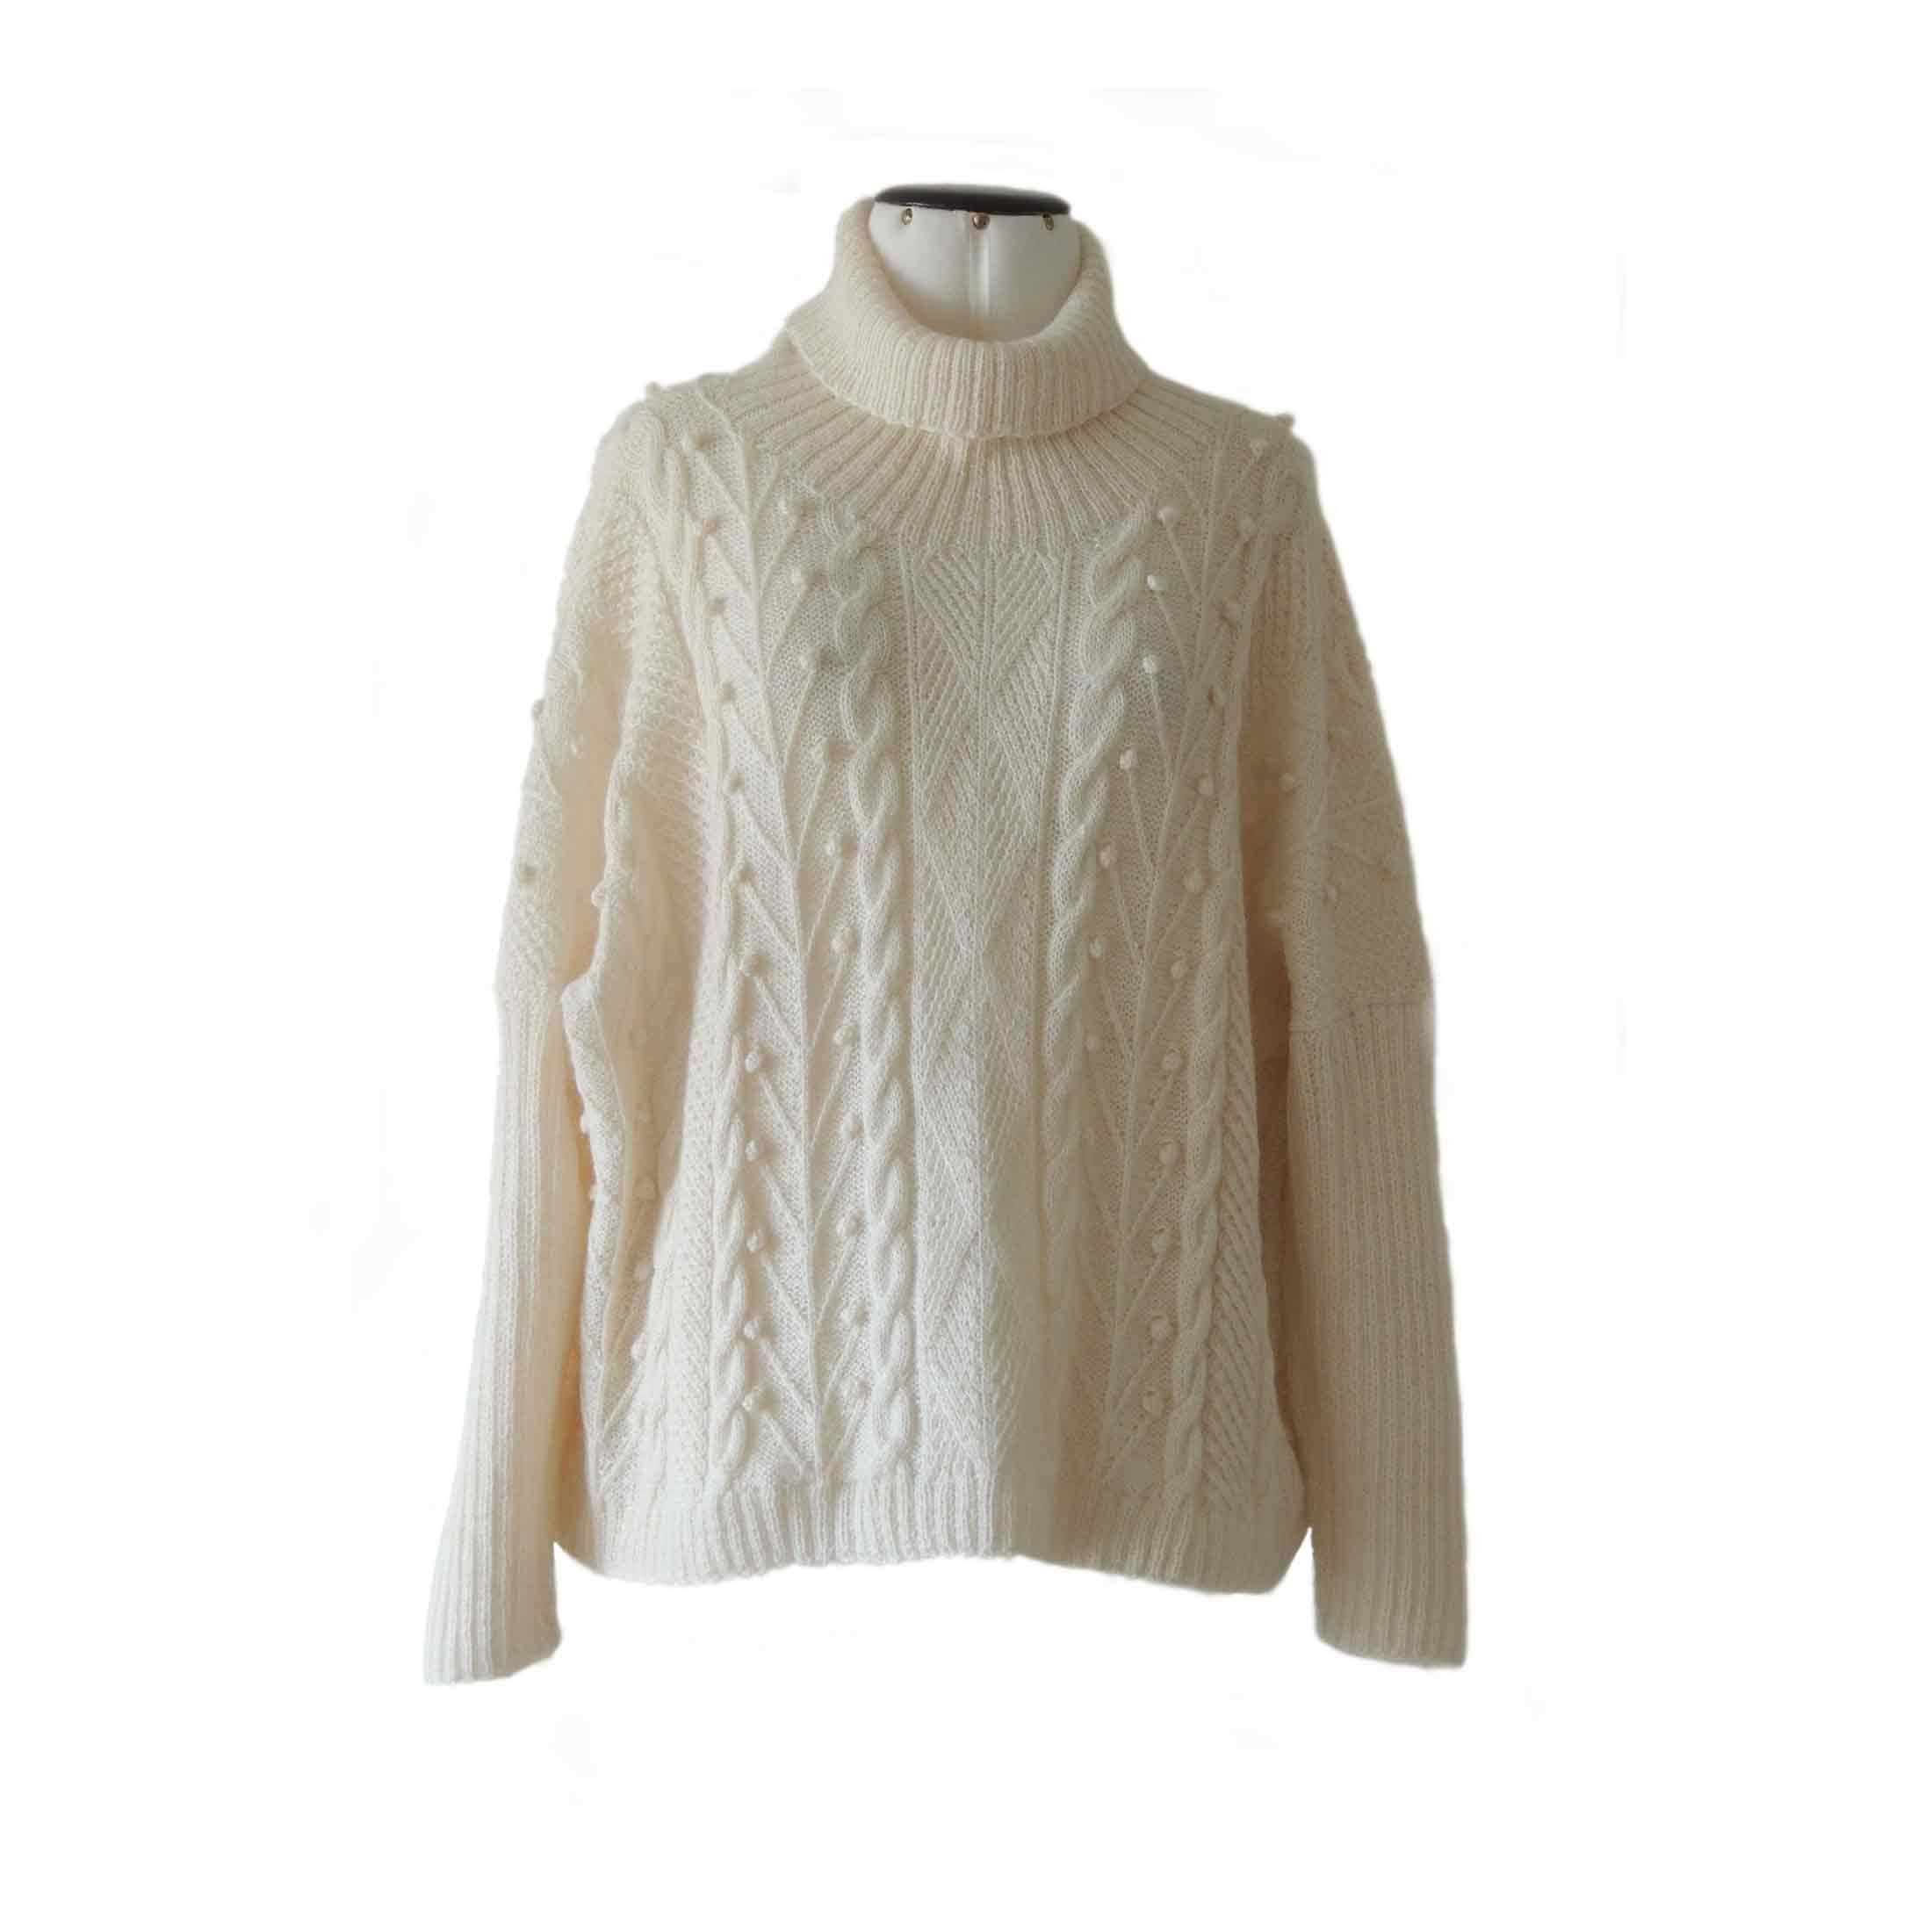 Women S Pullover 100 Baby Alpaca Hand Knitted Oversized Etsy Women Pullover Hand Knitted Sweaters Knitted Sweaters